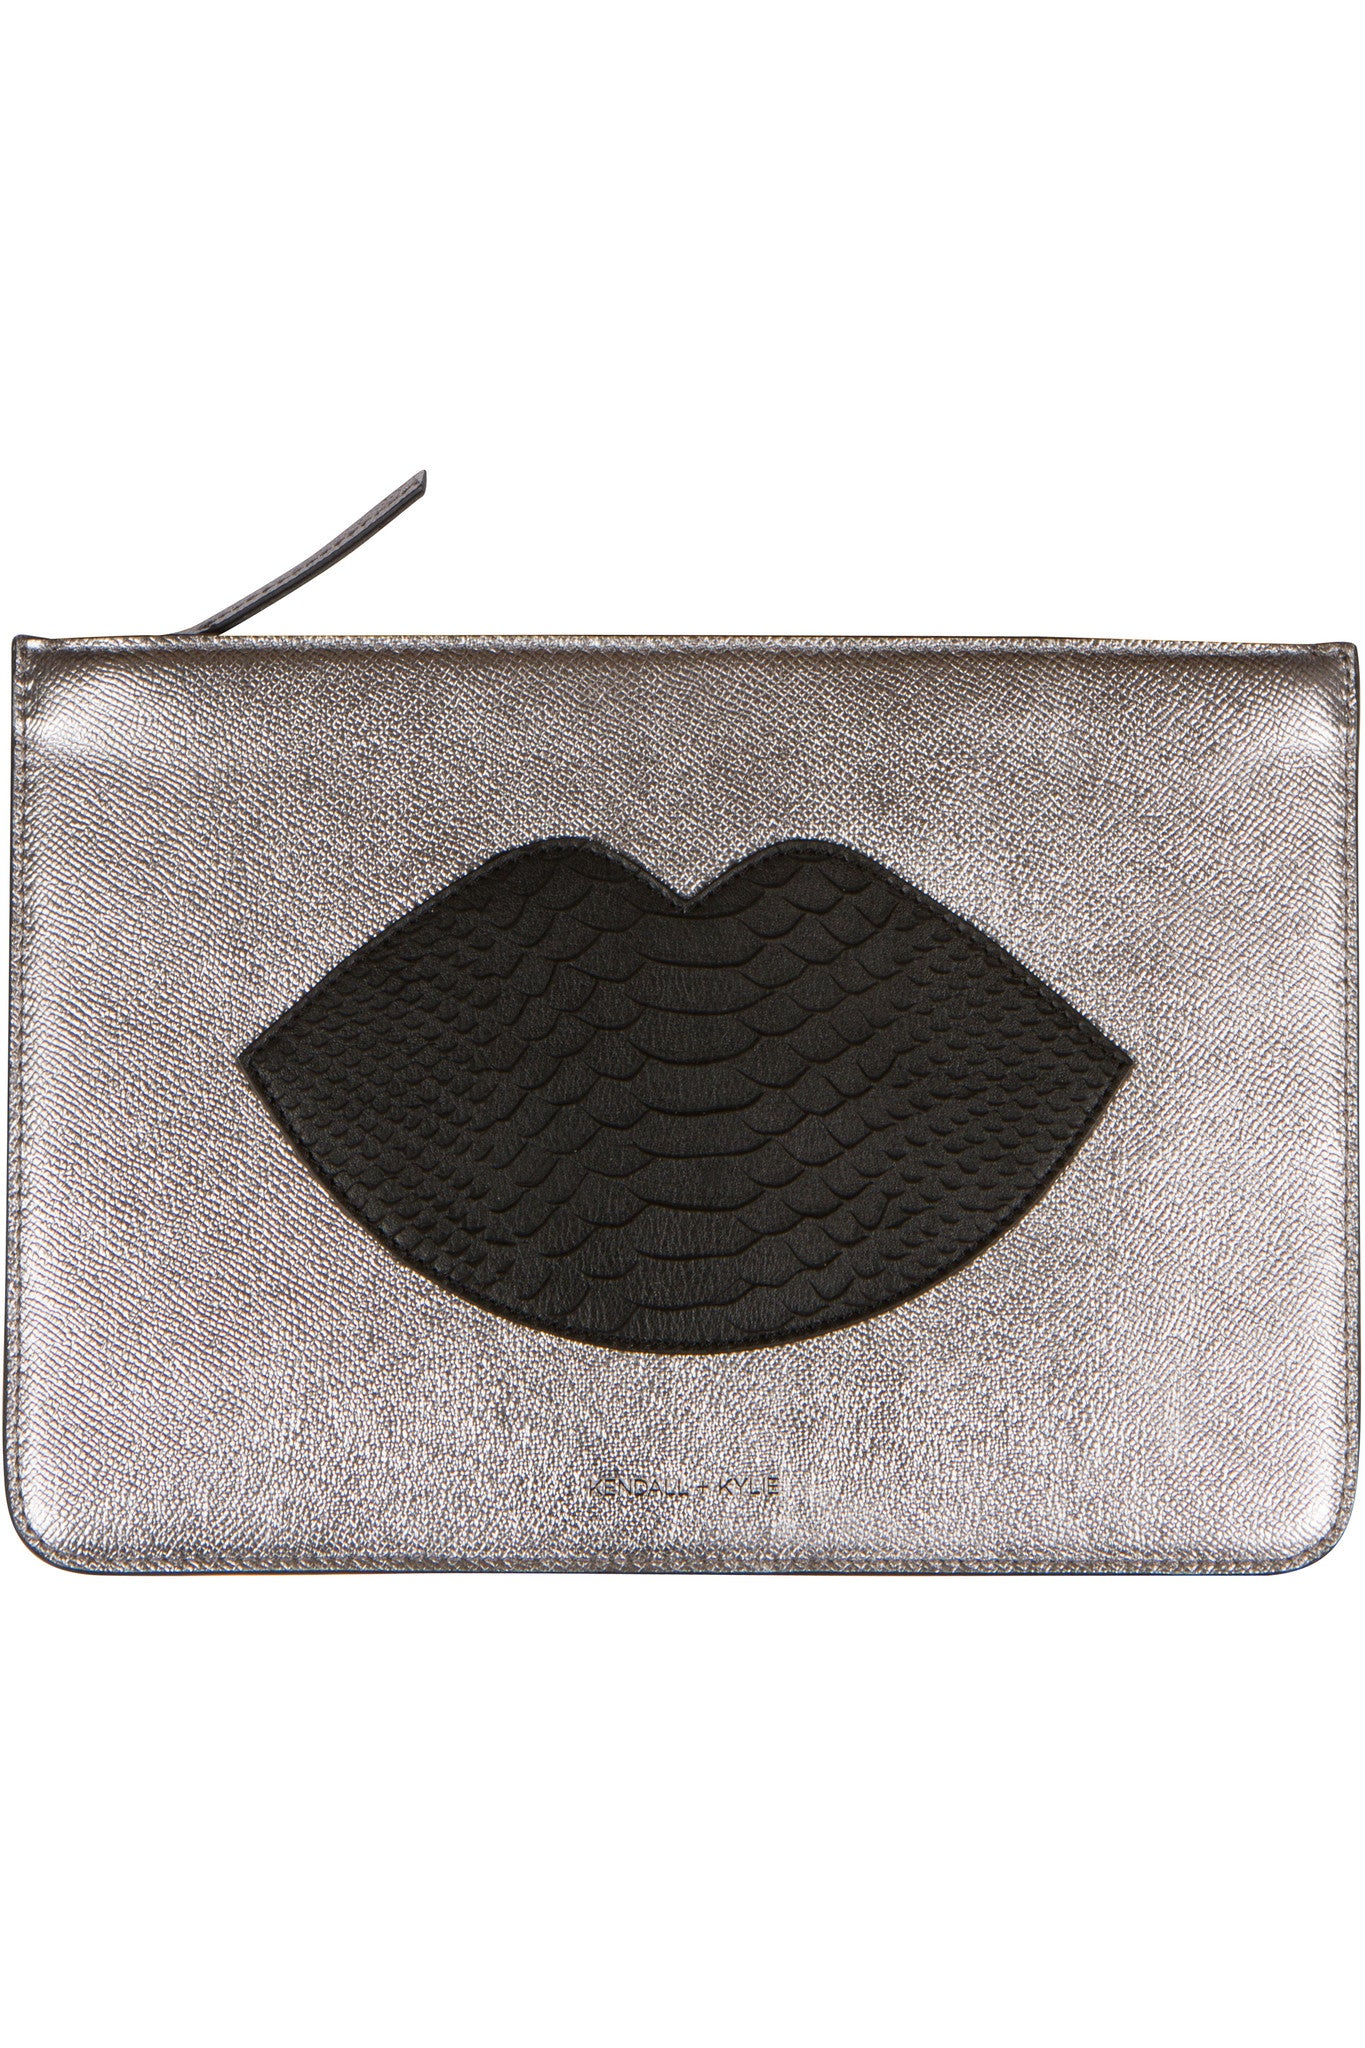 VERONICA POUCH